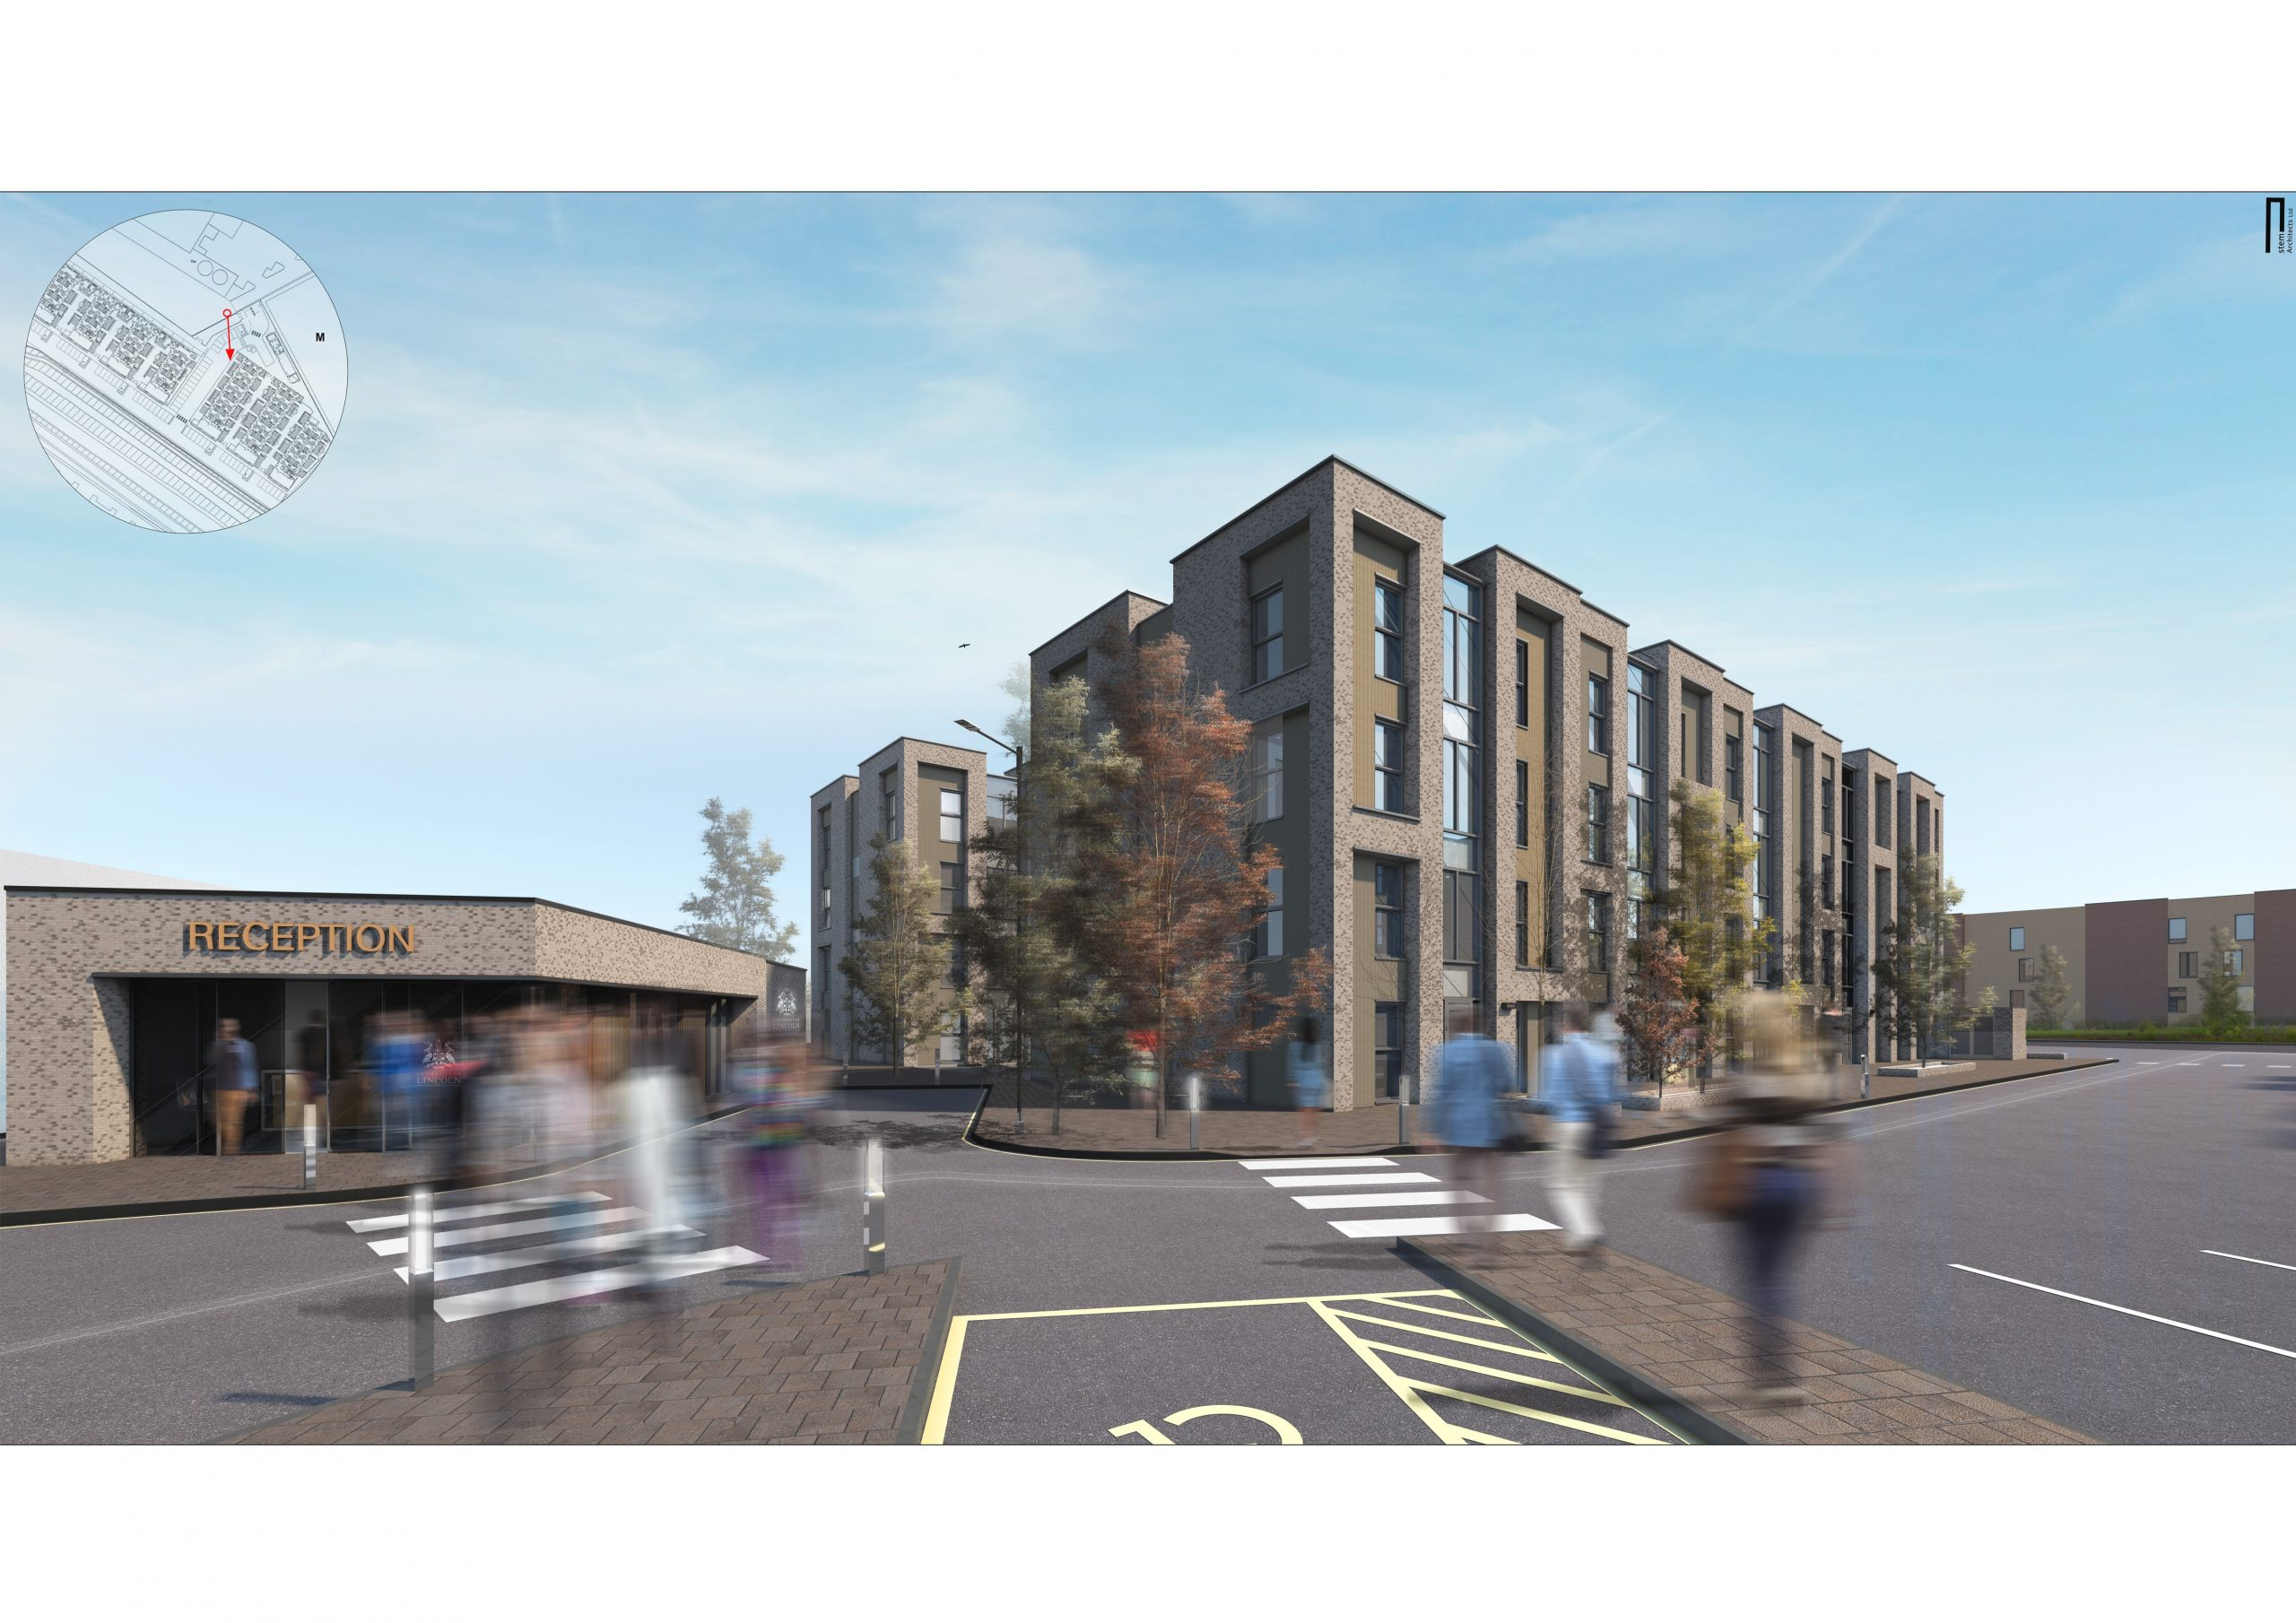 Sigmat appointed for 51 townhouse scheme